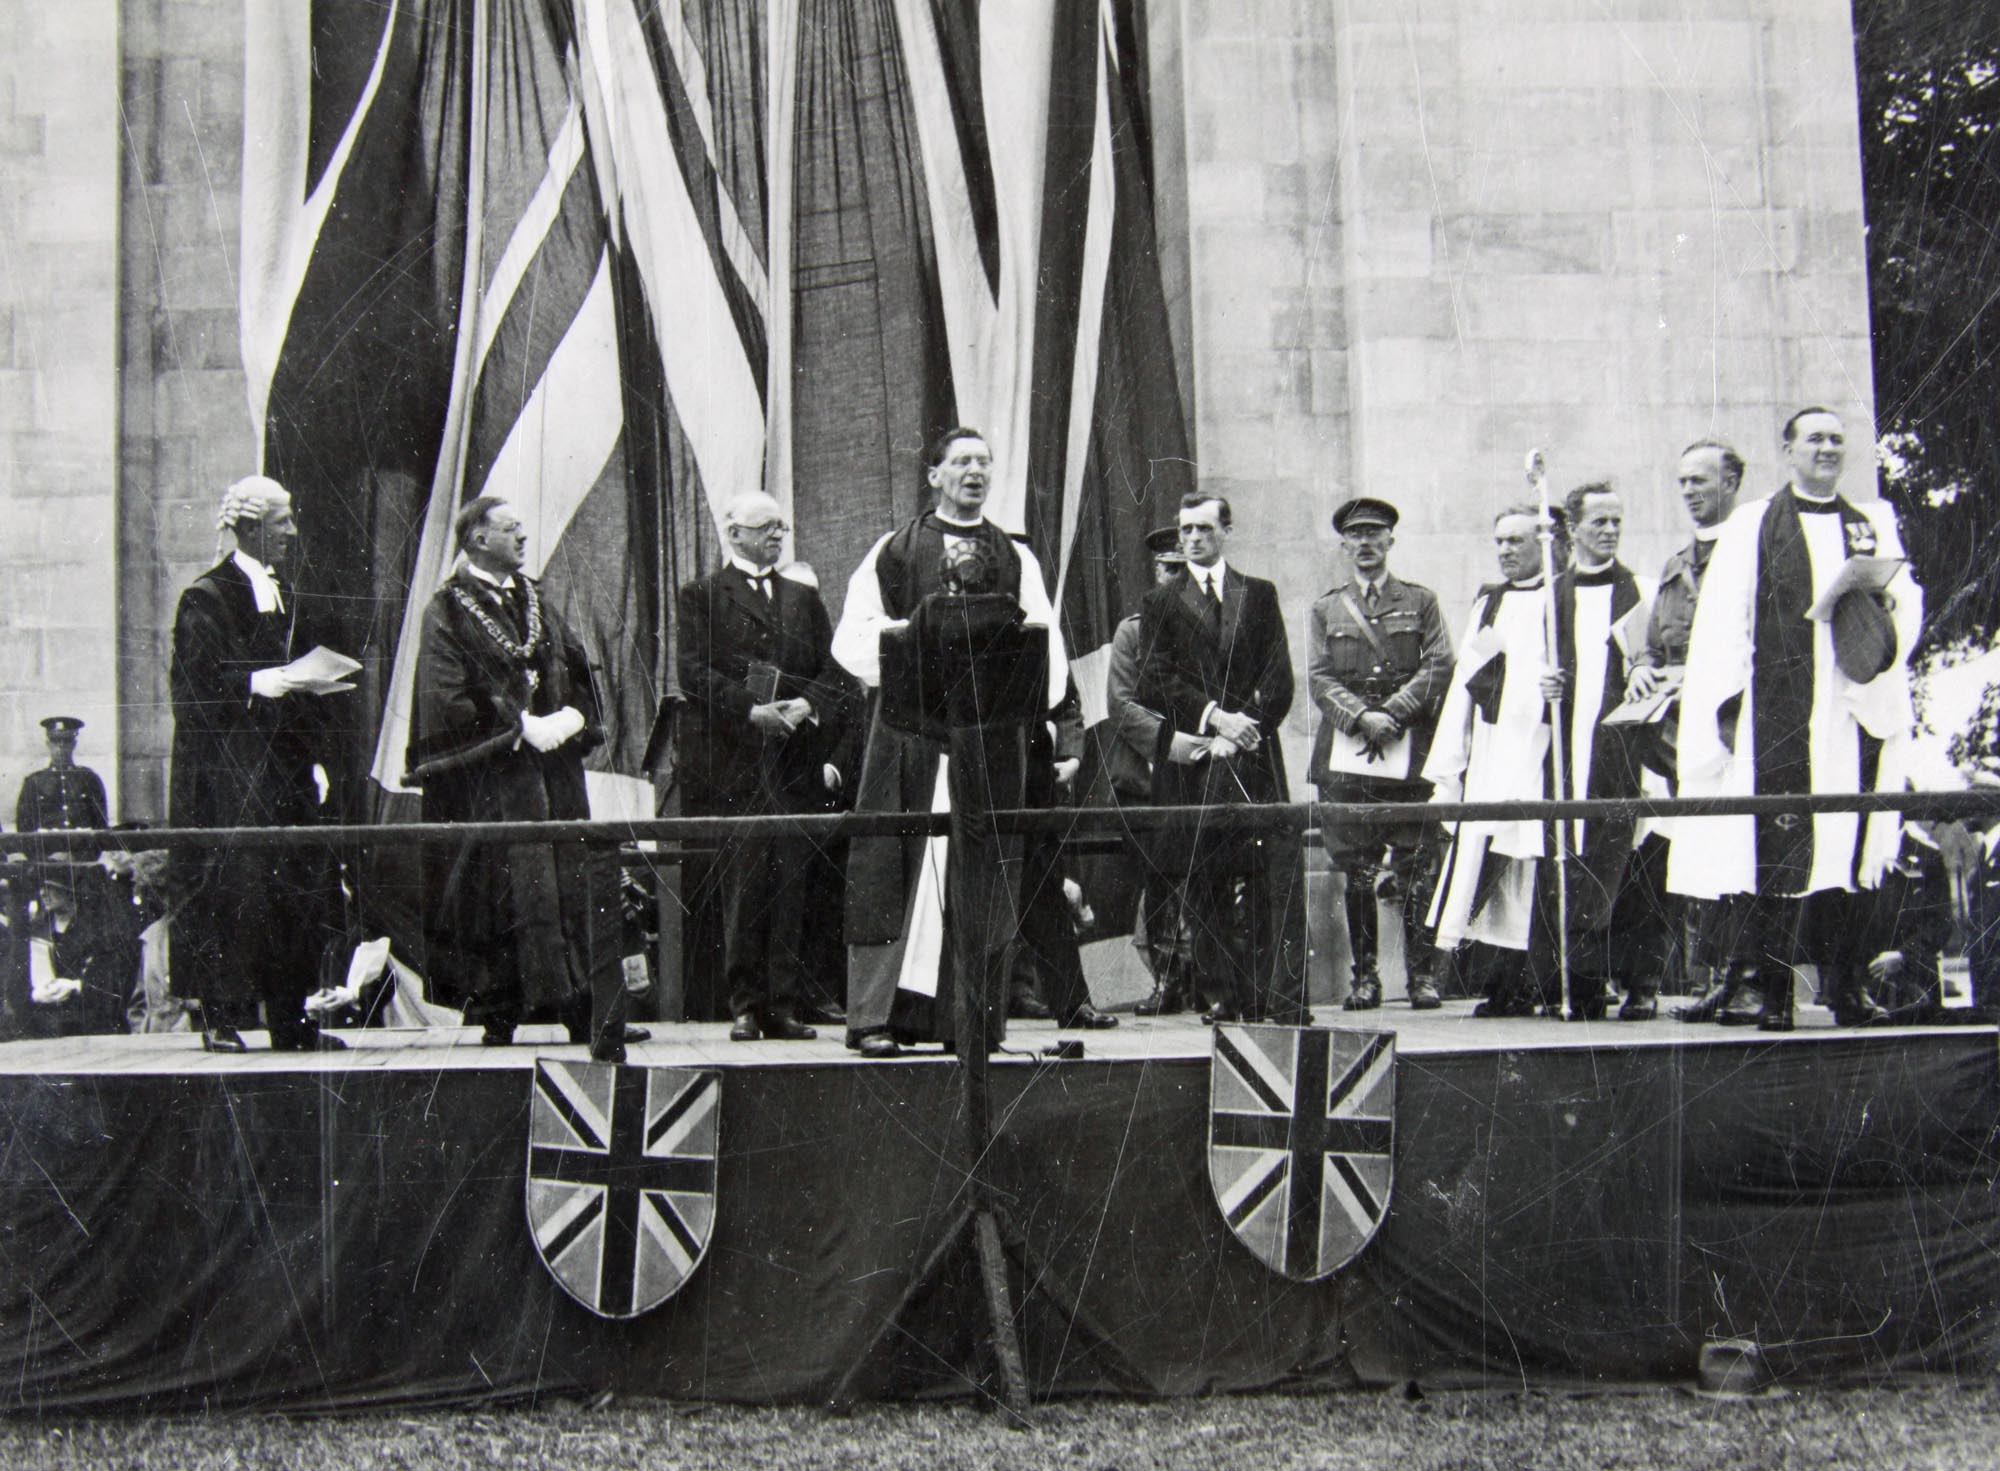 The unveiling of the Arch of Remembrance, 1925 -